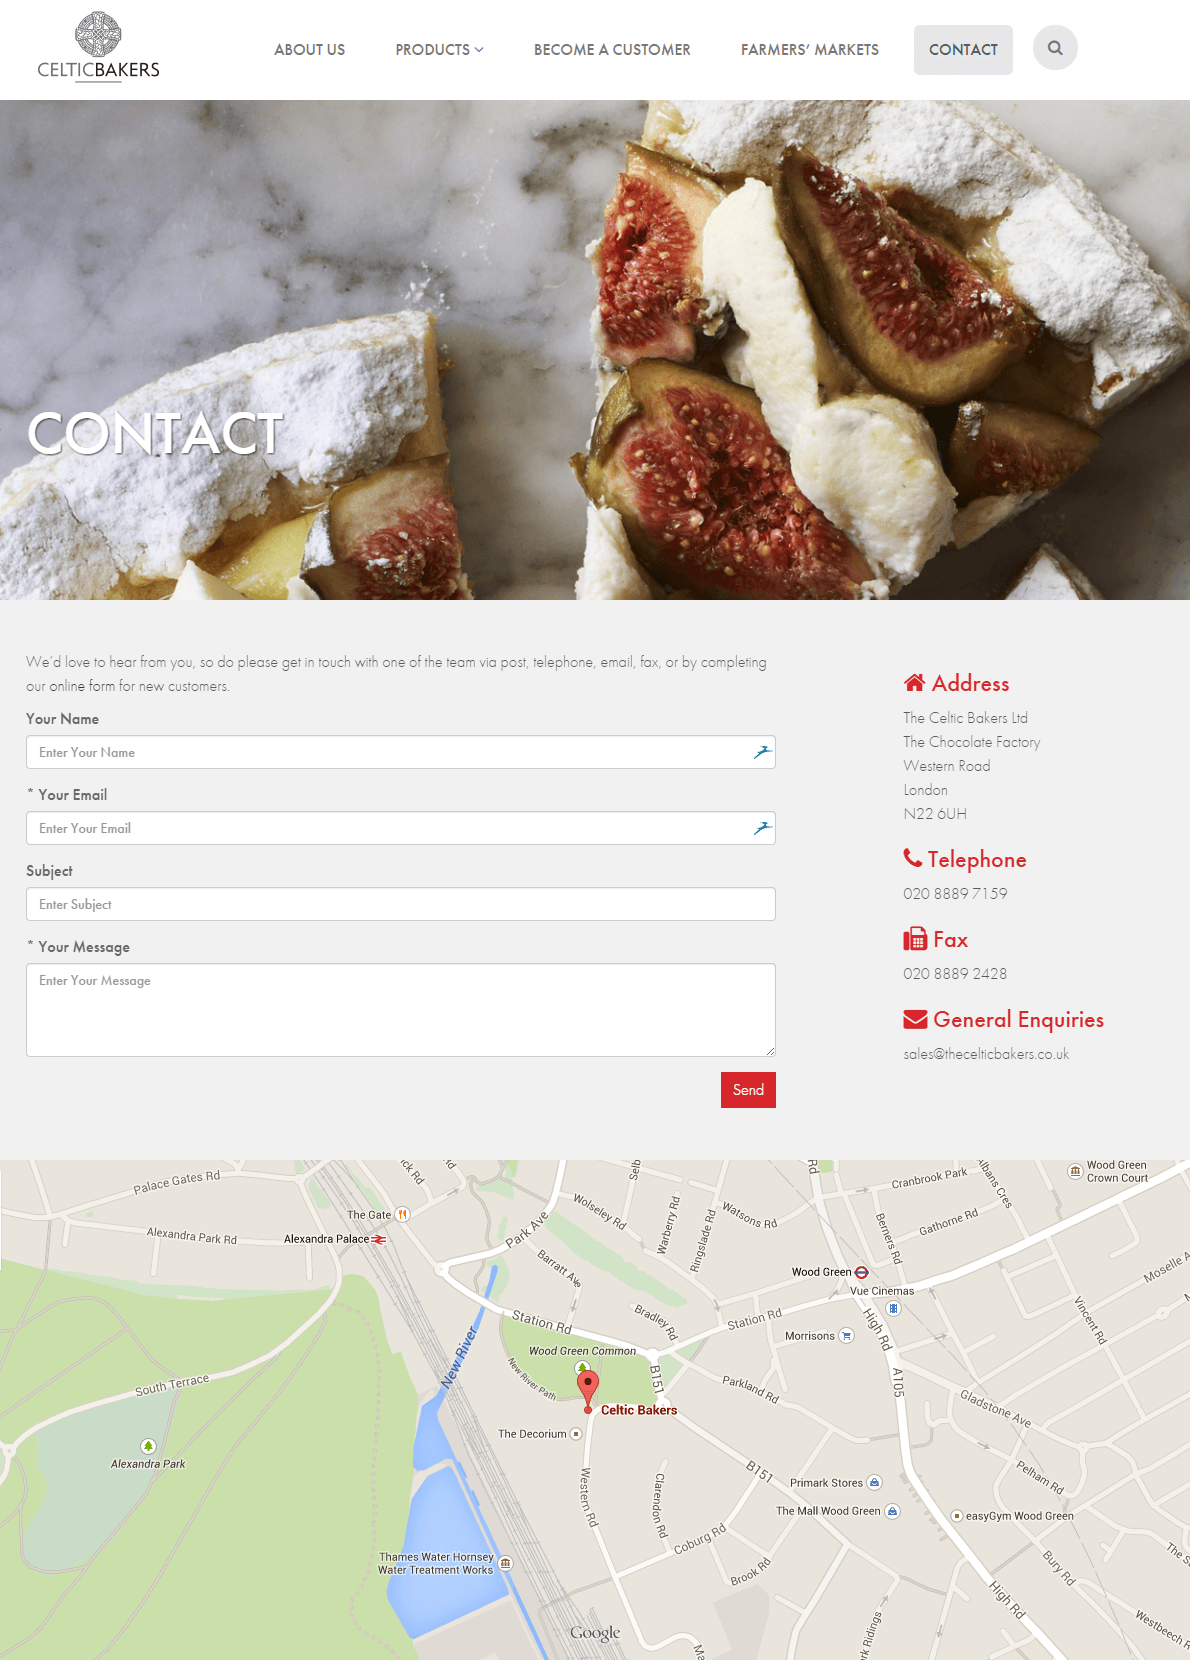 The Celtic Bakers website